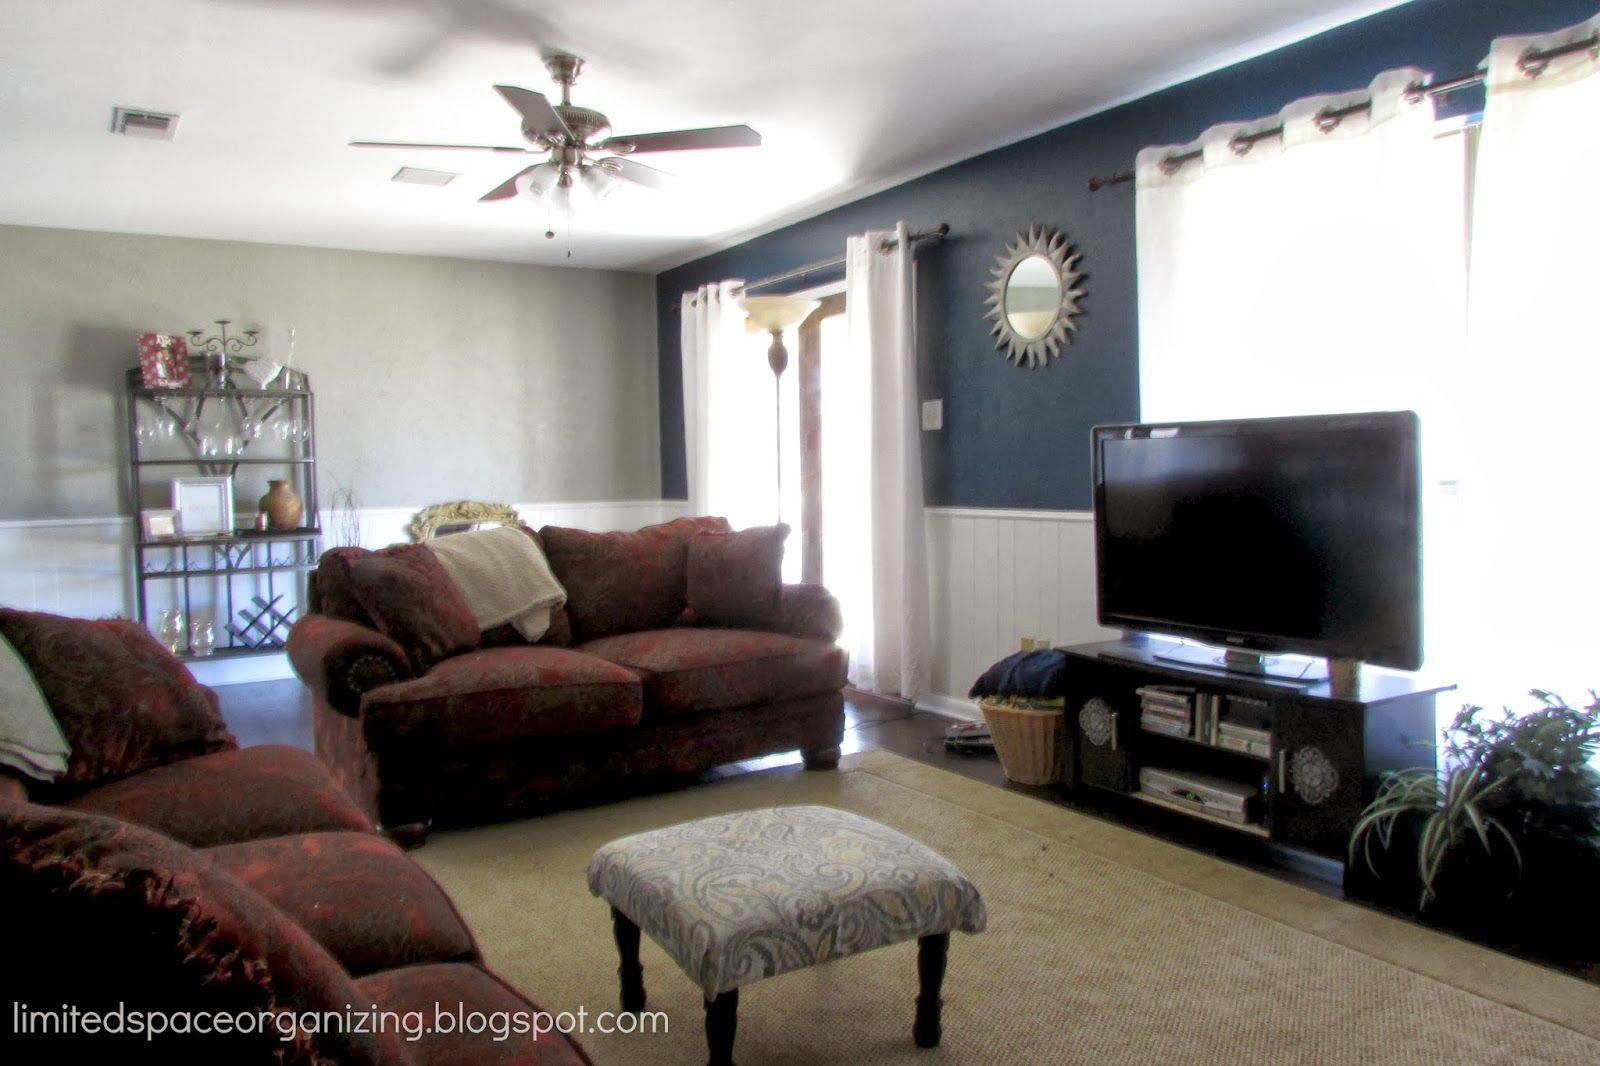 Greige and navy walls limited space organizing living room